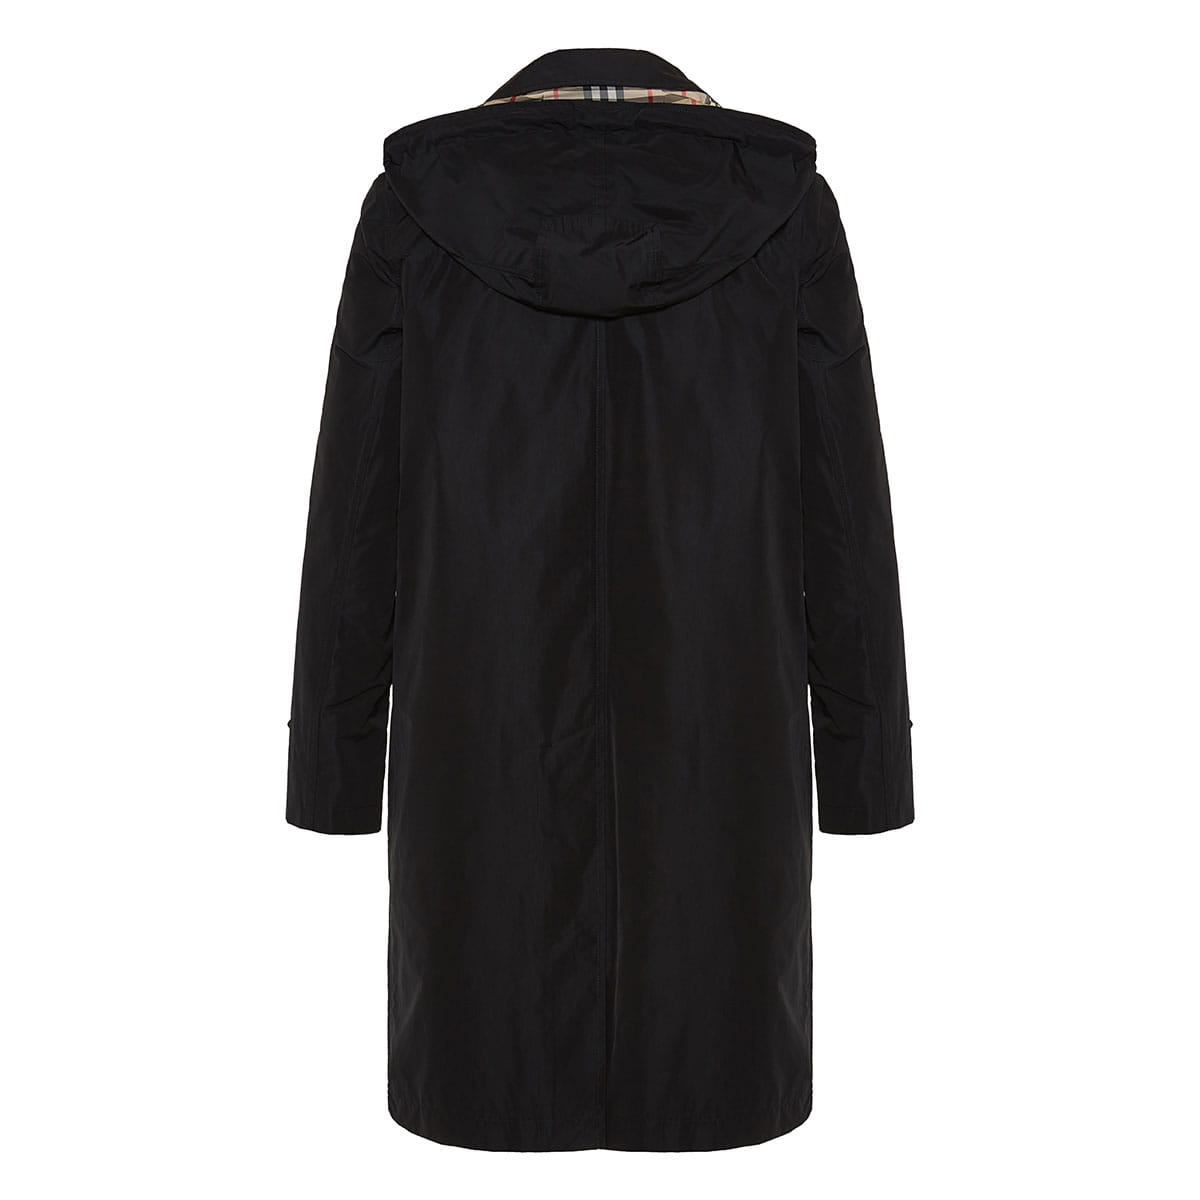 Taffeta car coat